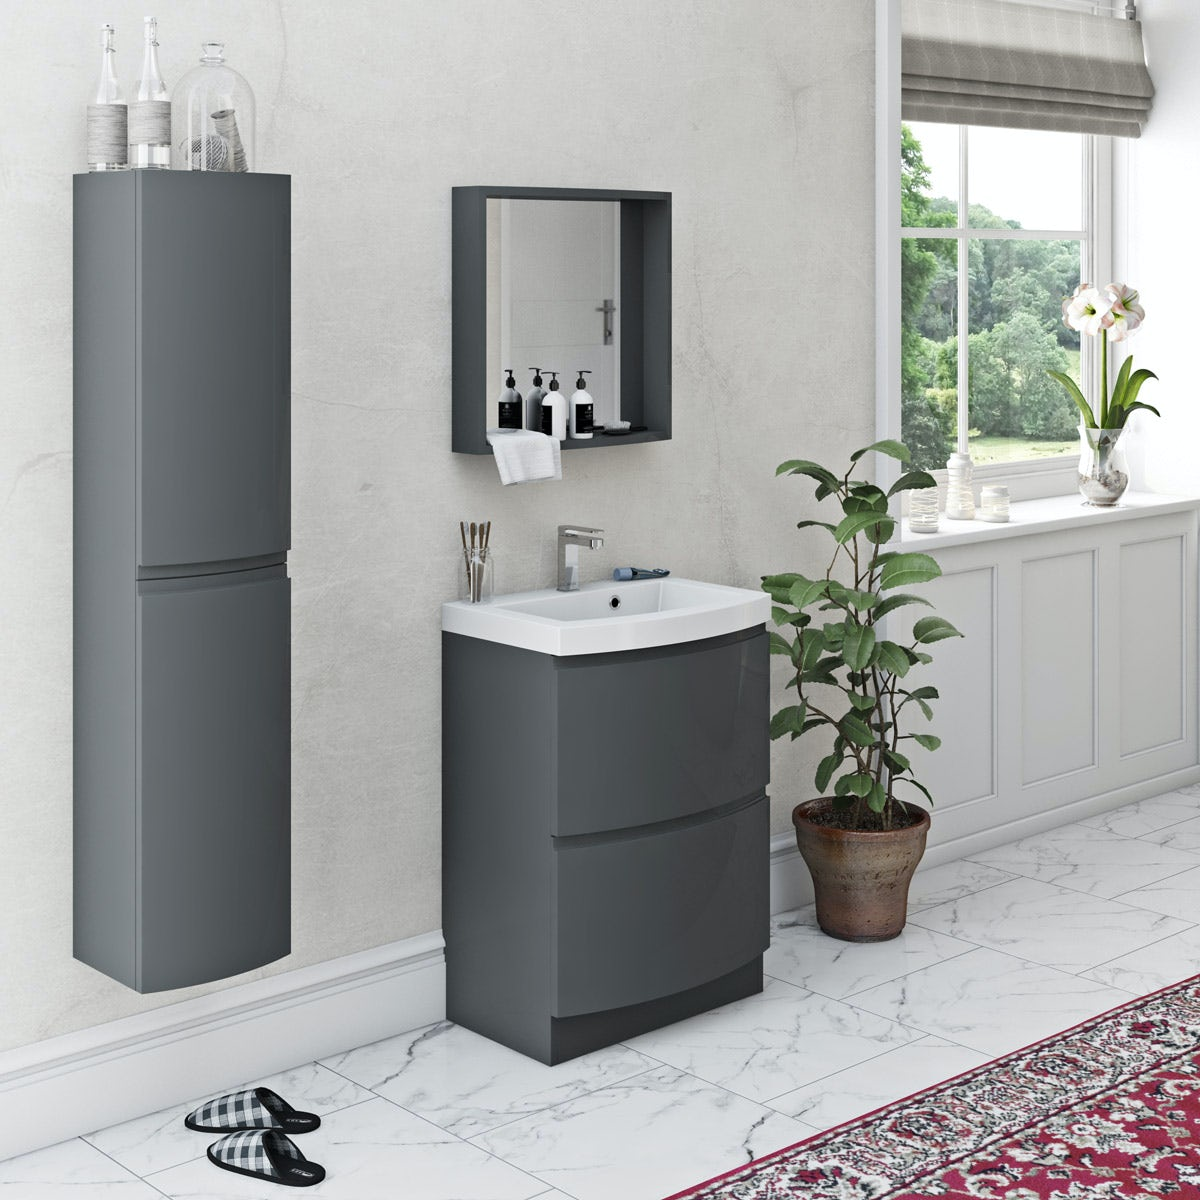 Mode Harrison slate furniture package with floorstanding drawer unit 600mm